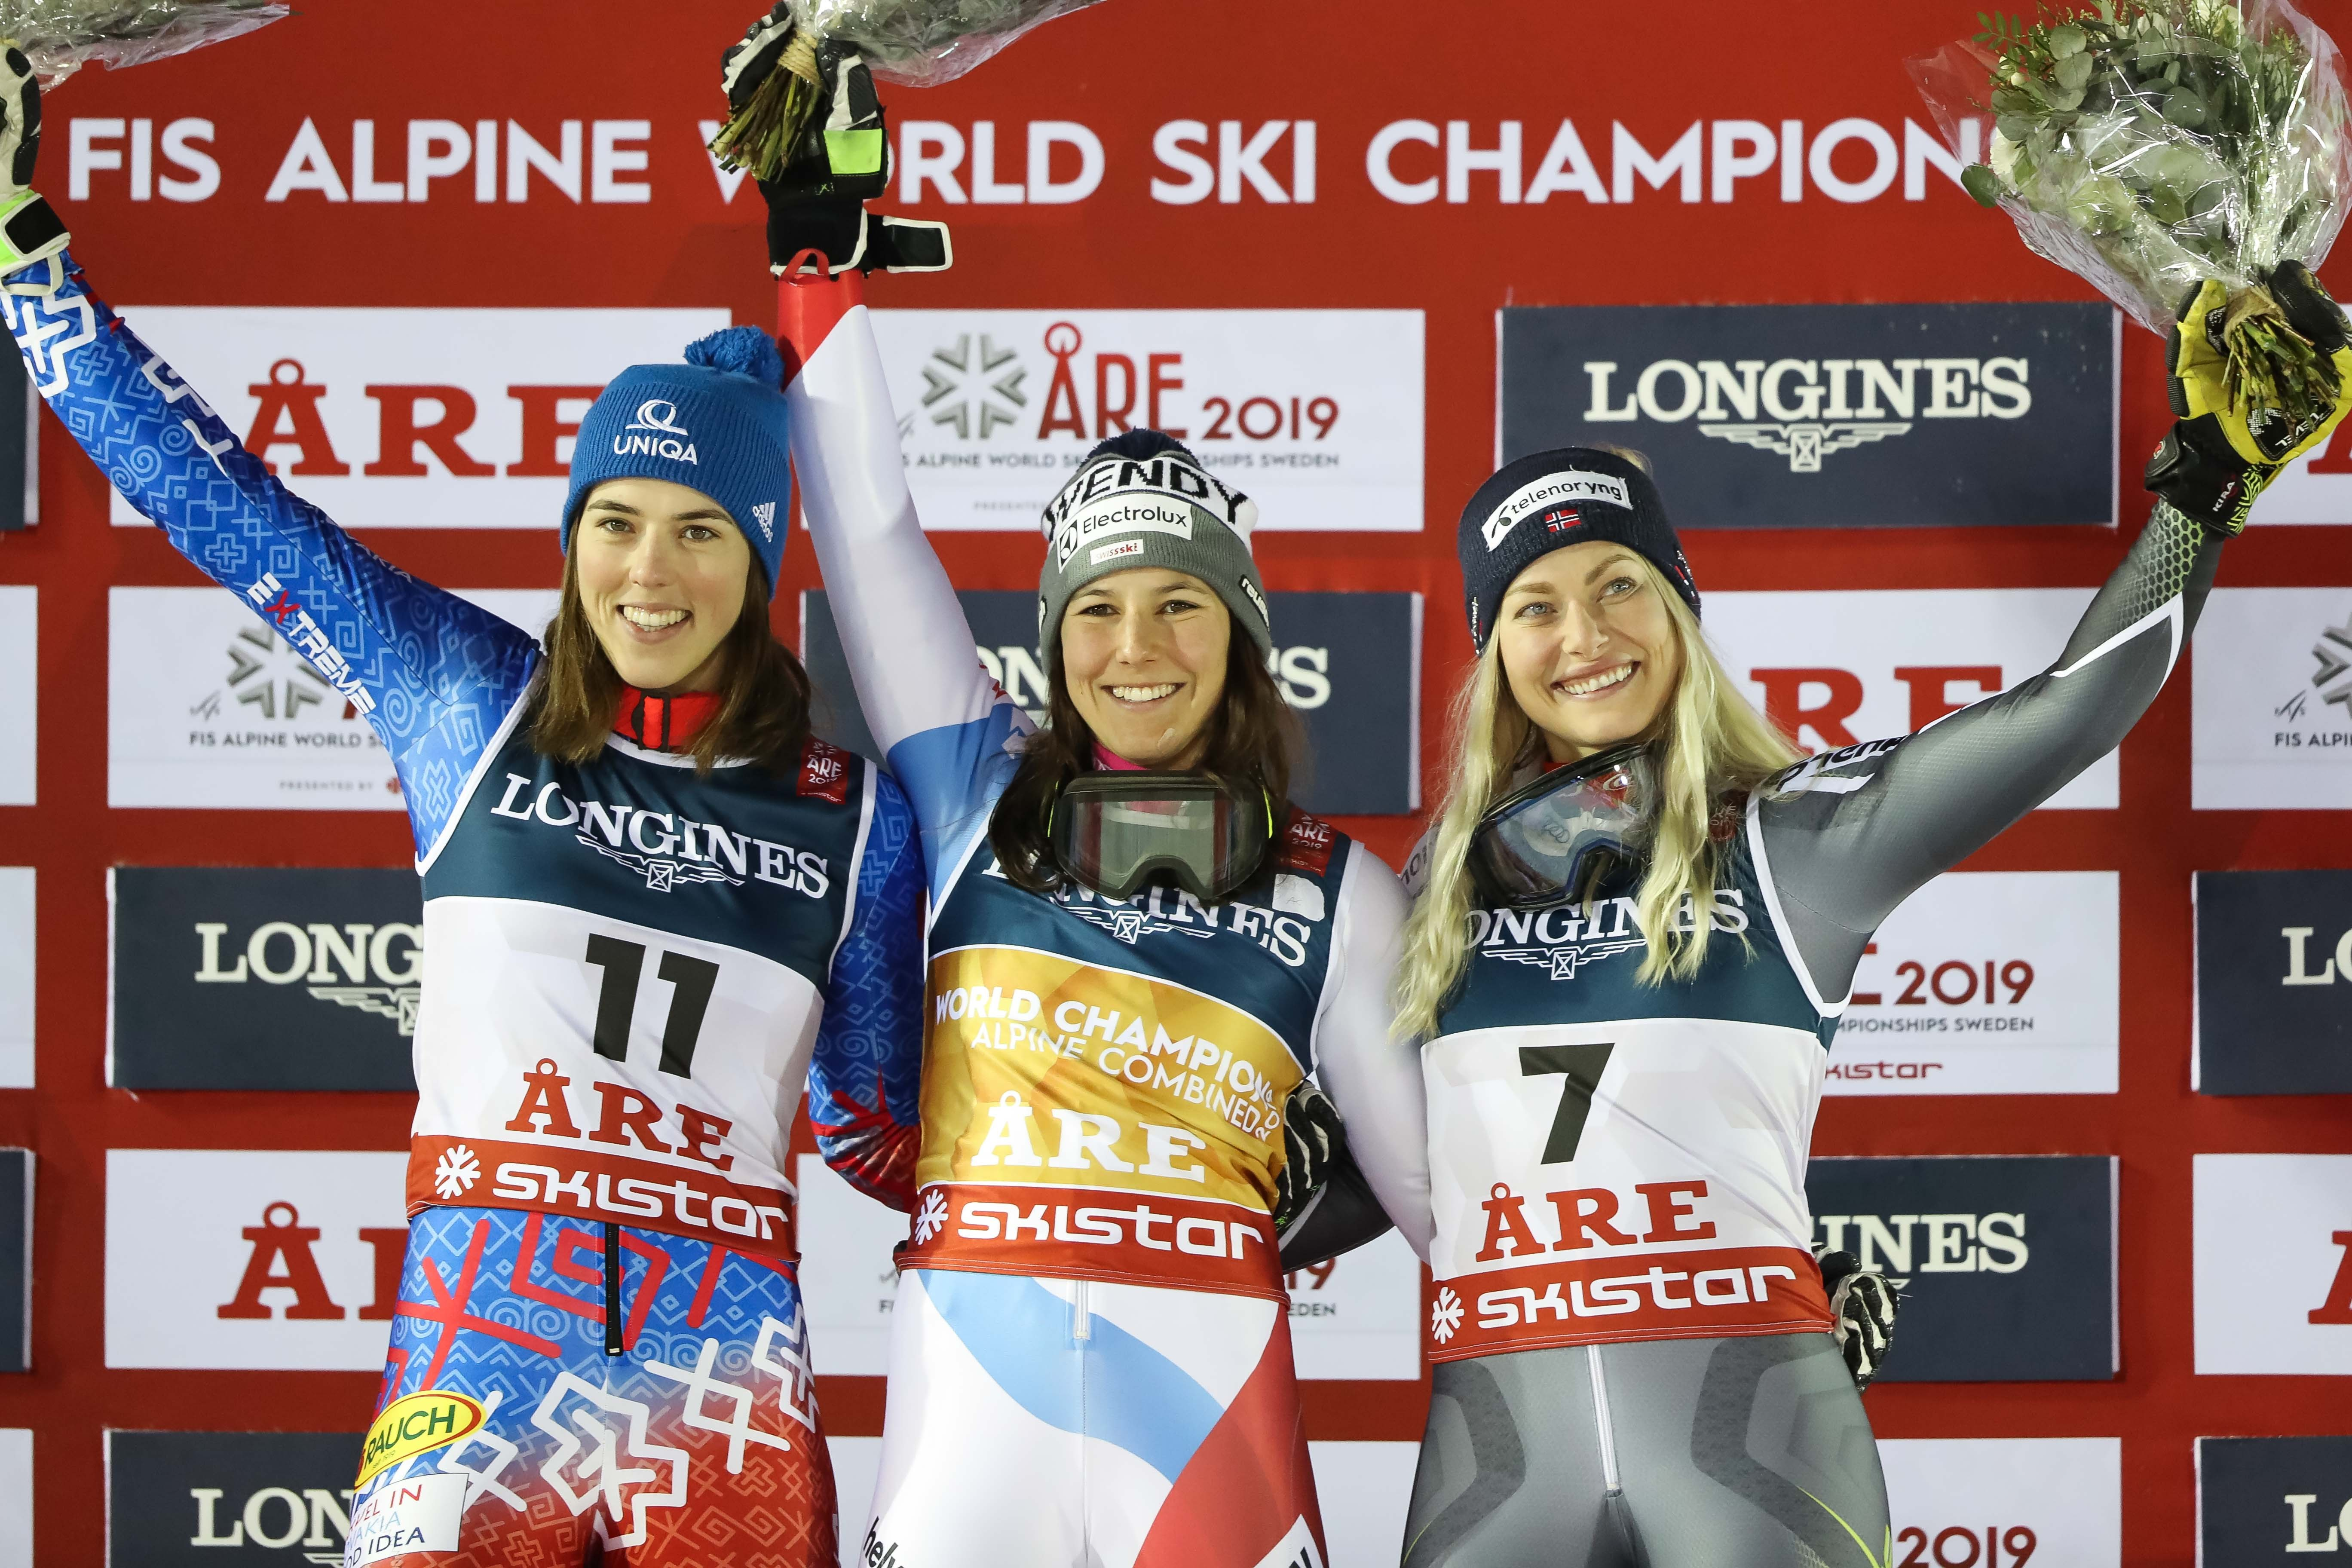 Petra Vlhova of Slovakia wins the silver medal, Wendy Holdener of Switzerland wins the gold medal, Ragnhild Mowinckel of Norway wins the bronze medal during the FIS World Ski Championships Women's Alpine Combined on February 8, 2019 in Are Sweden